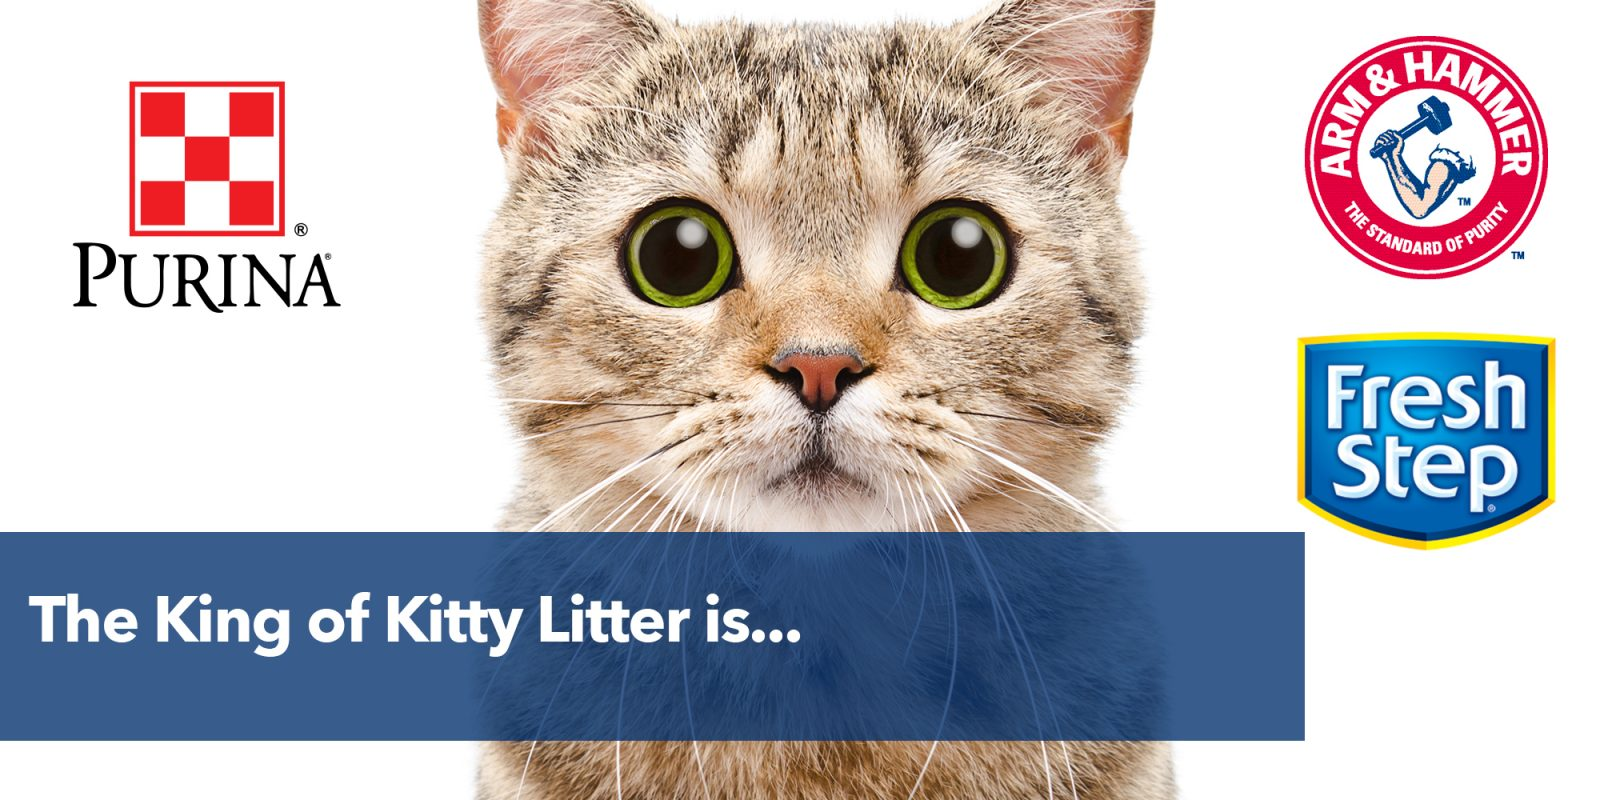 The King of Kitty Litter is…